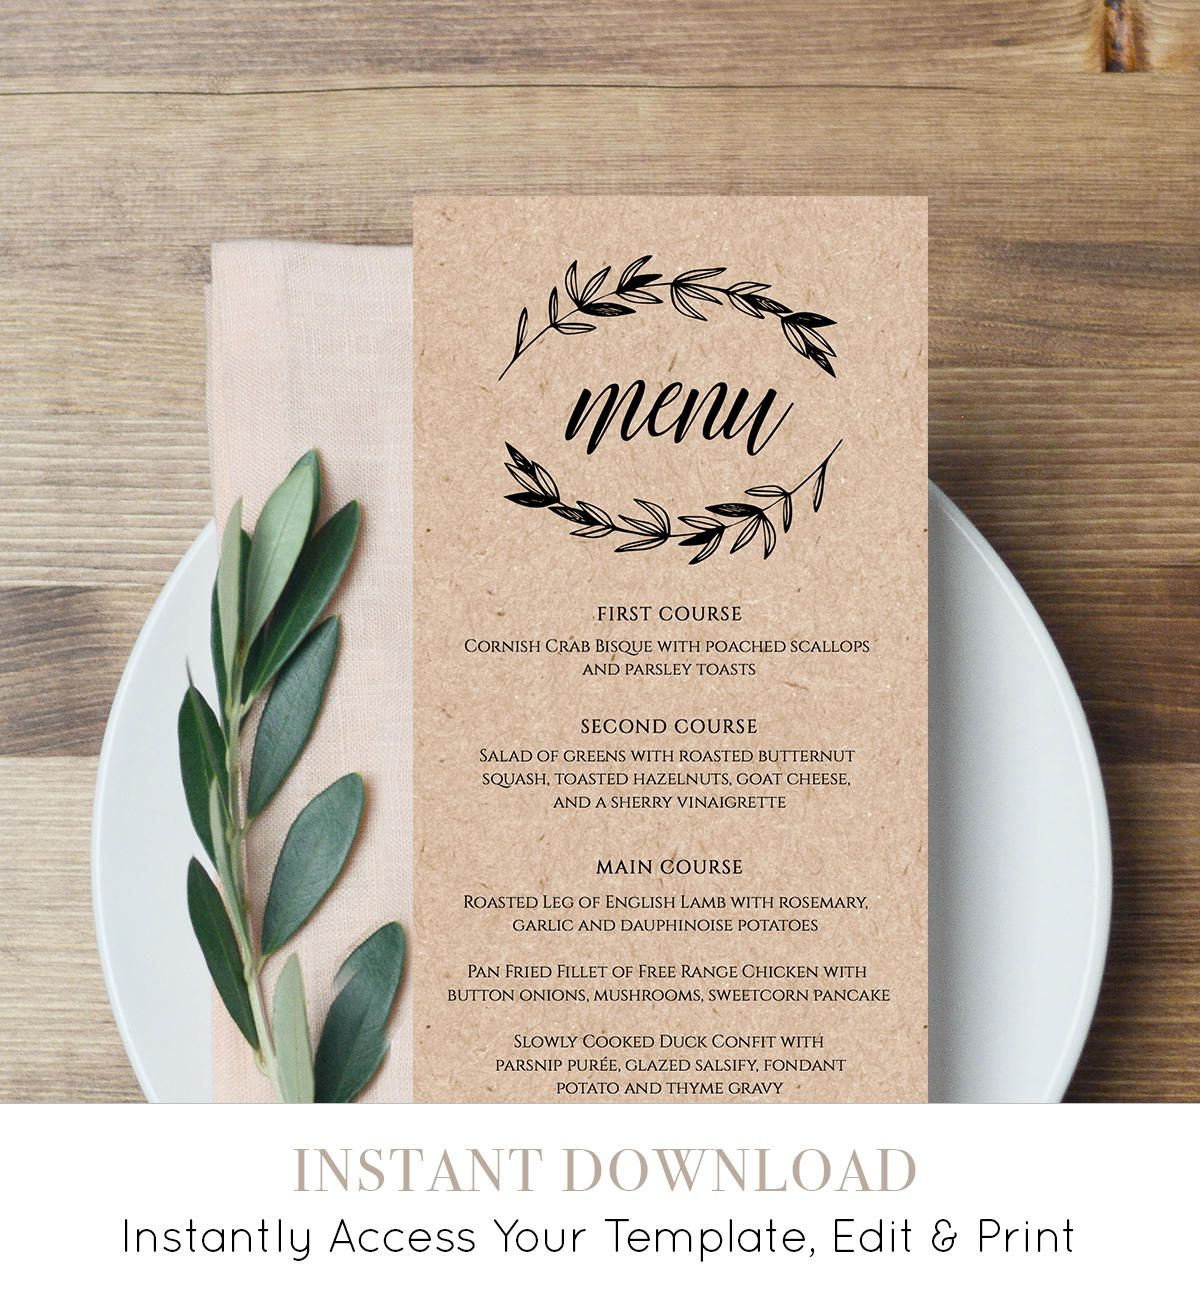 006 Awesome Free Online Wedding Menu Template Concept  TemplatesFull